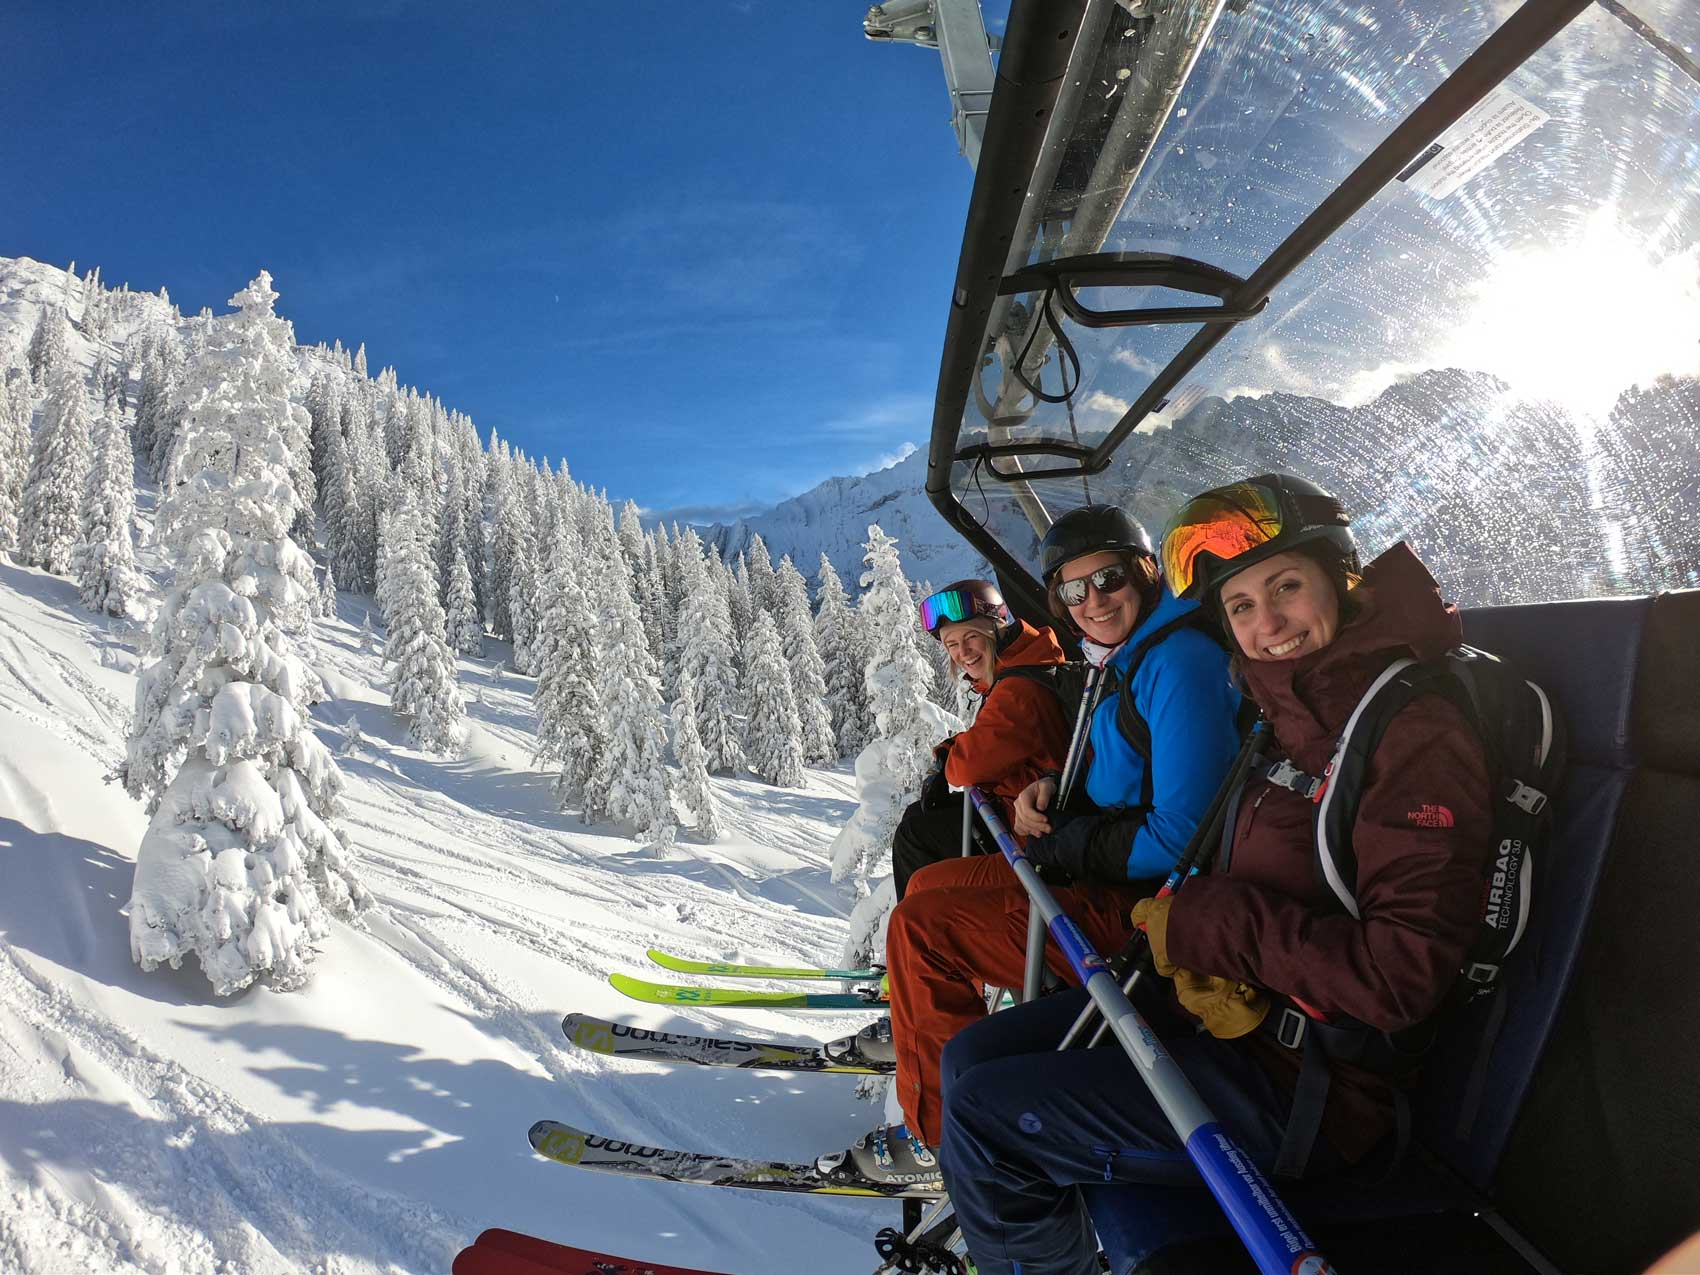 tiroler-zugspitz-arena-ski-fahren-munichmountaingirls